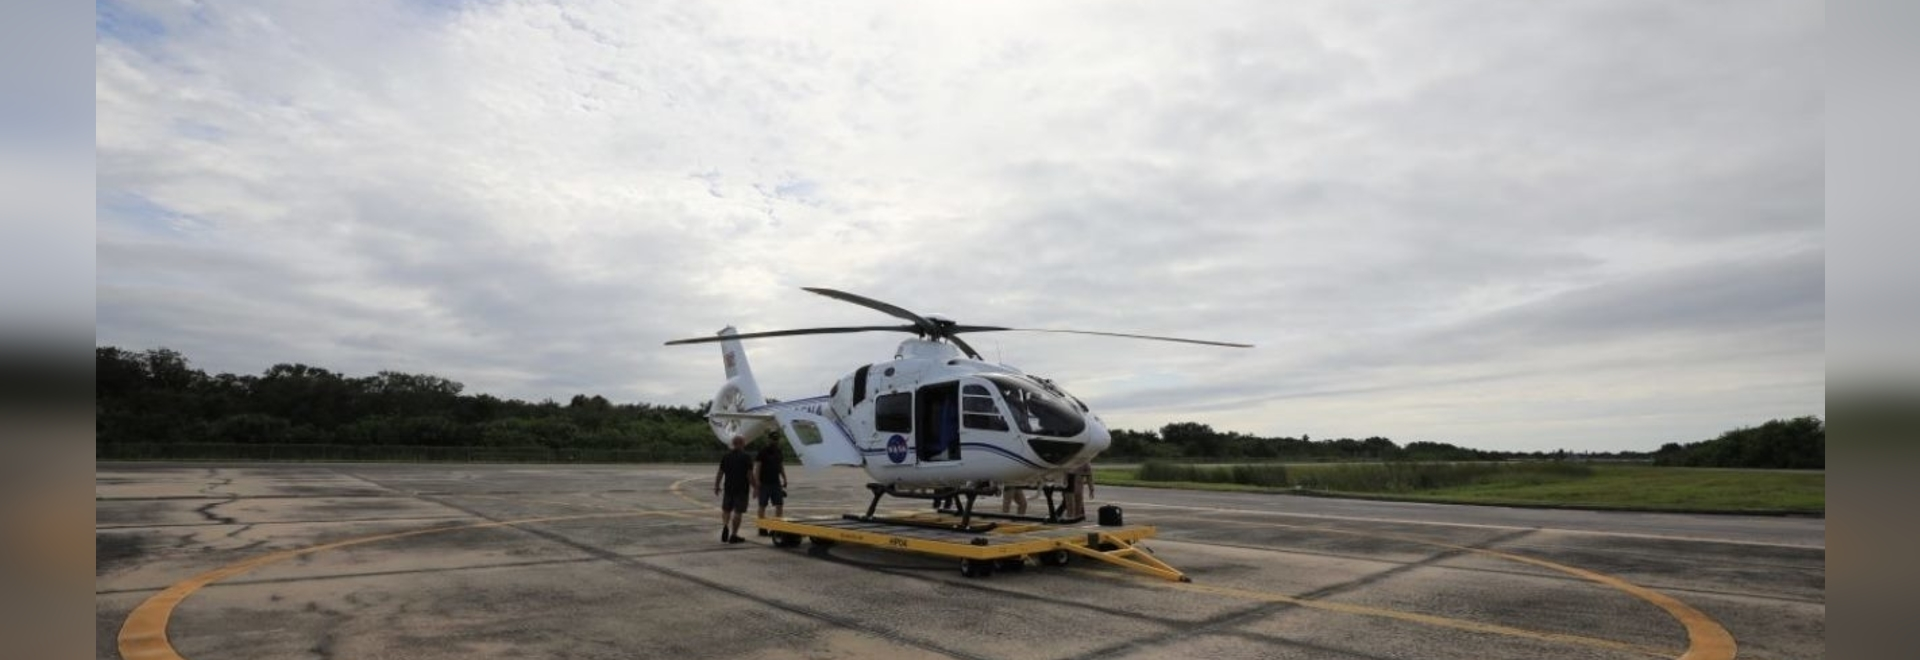 Airbus Helicopters delivers two new H135 helicopters to Nasa.